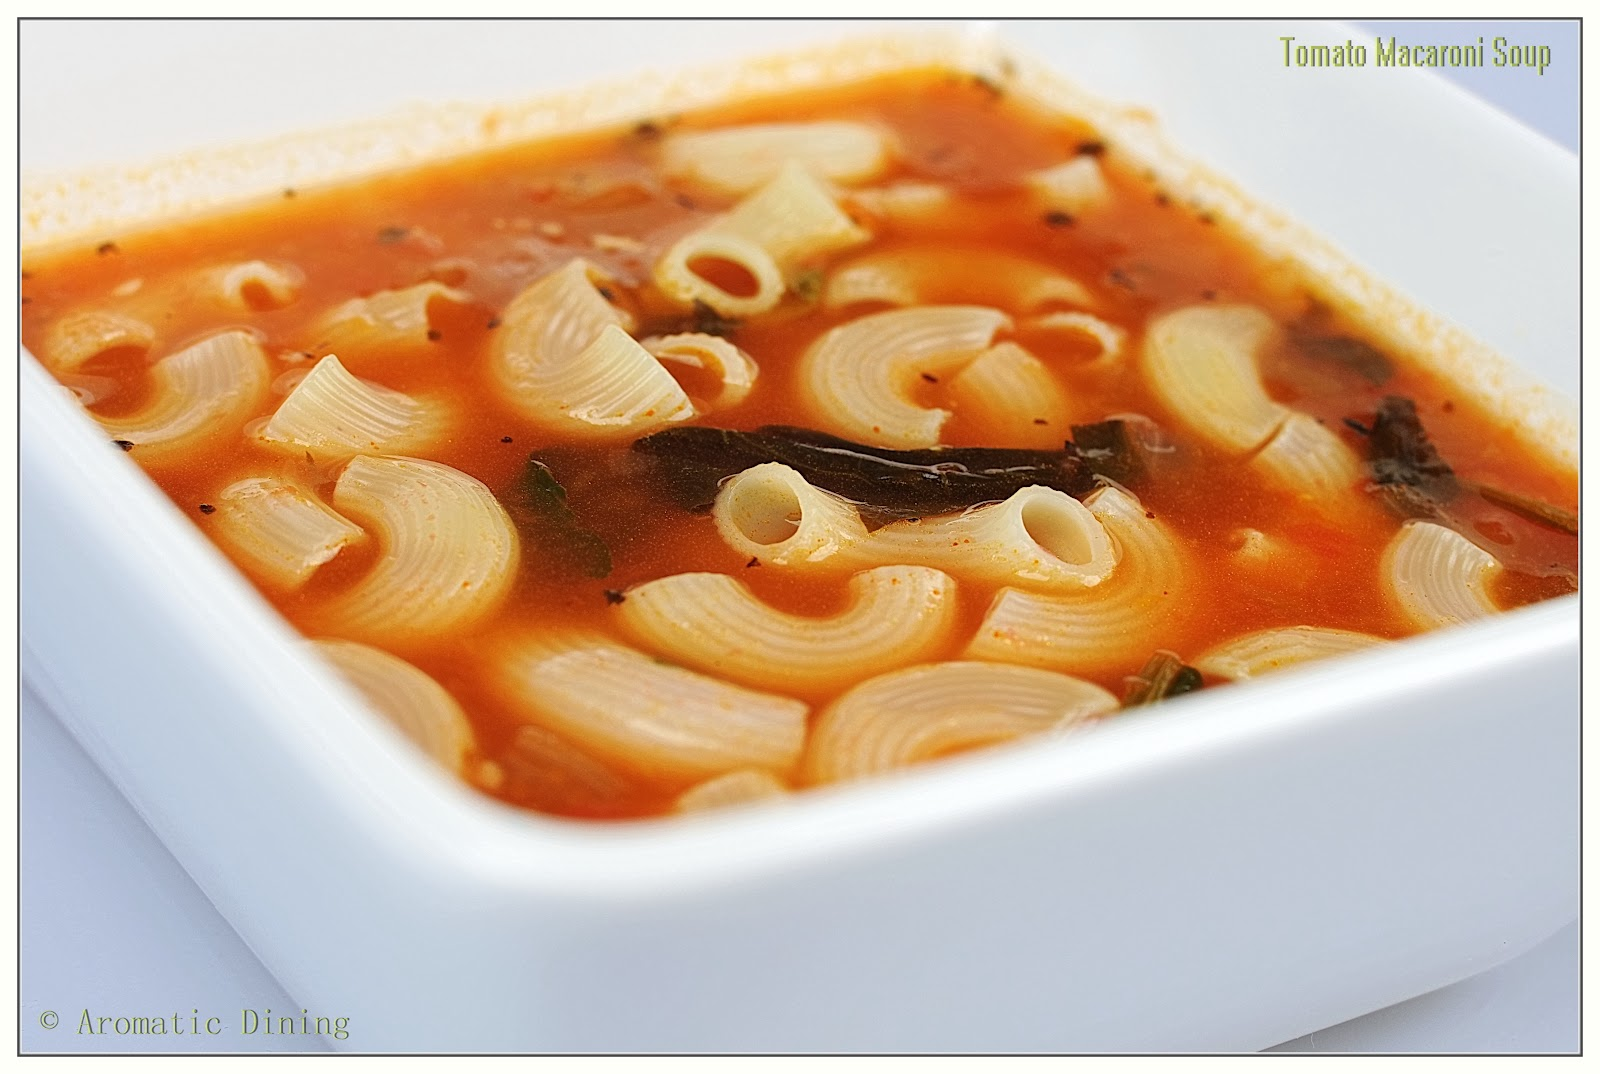 soup with tomatoes kale chicken macaroni soup with tomato macaroni